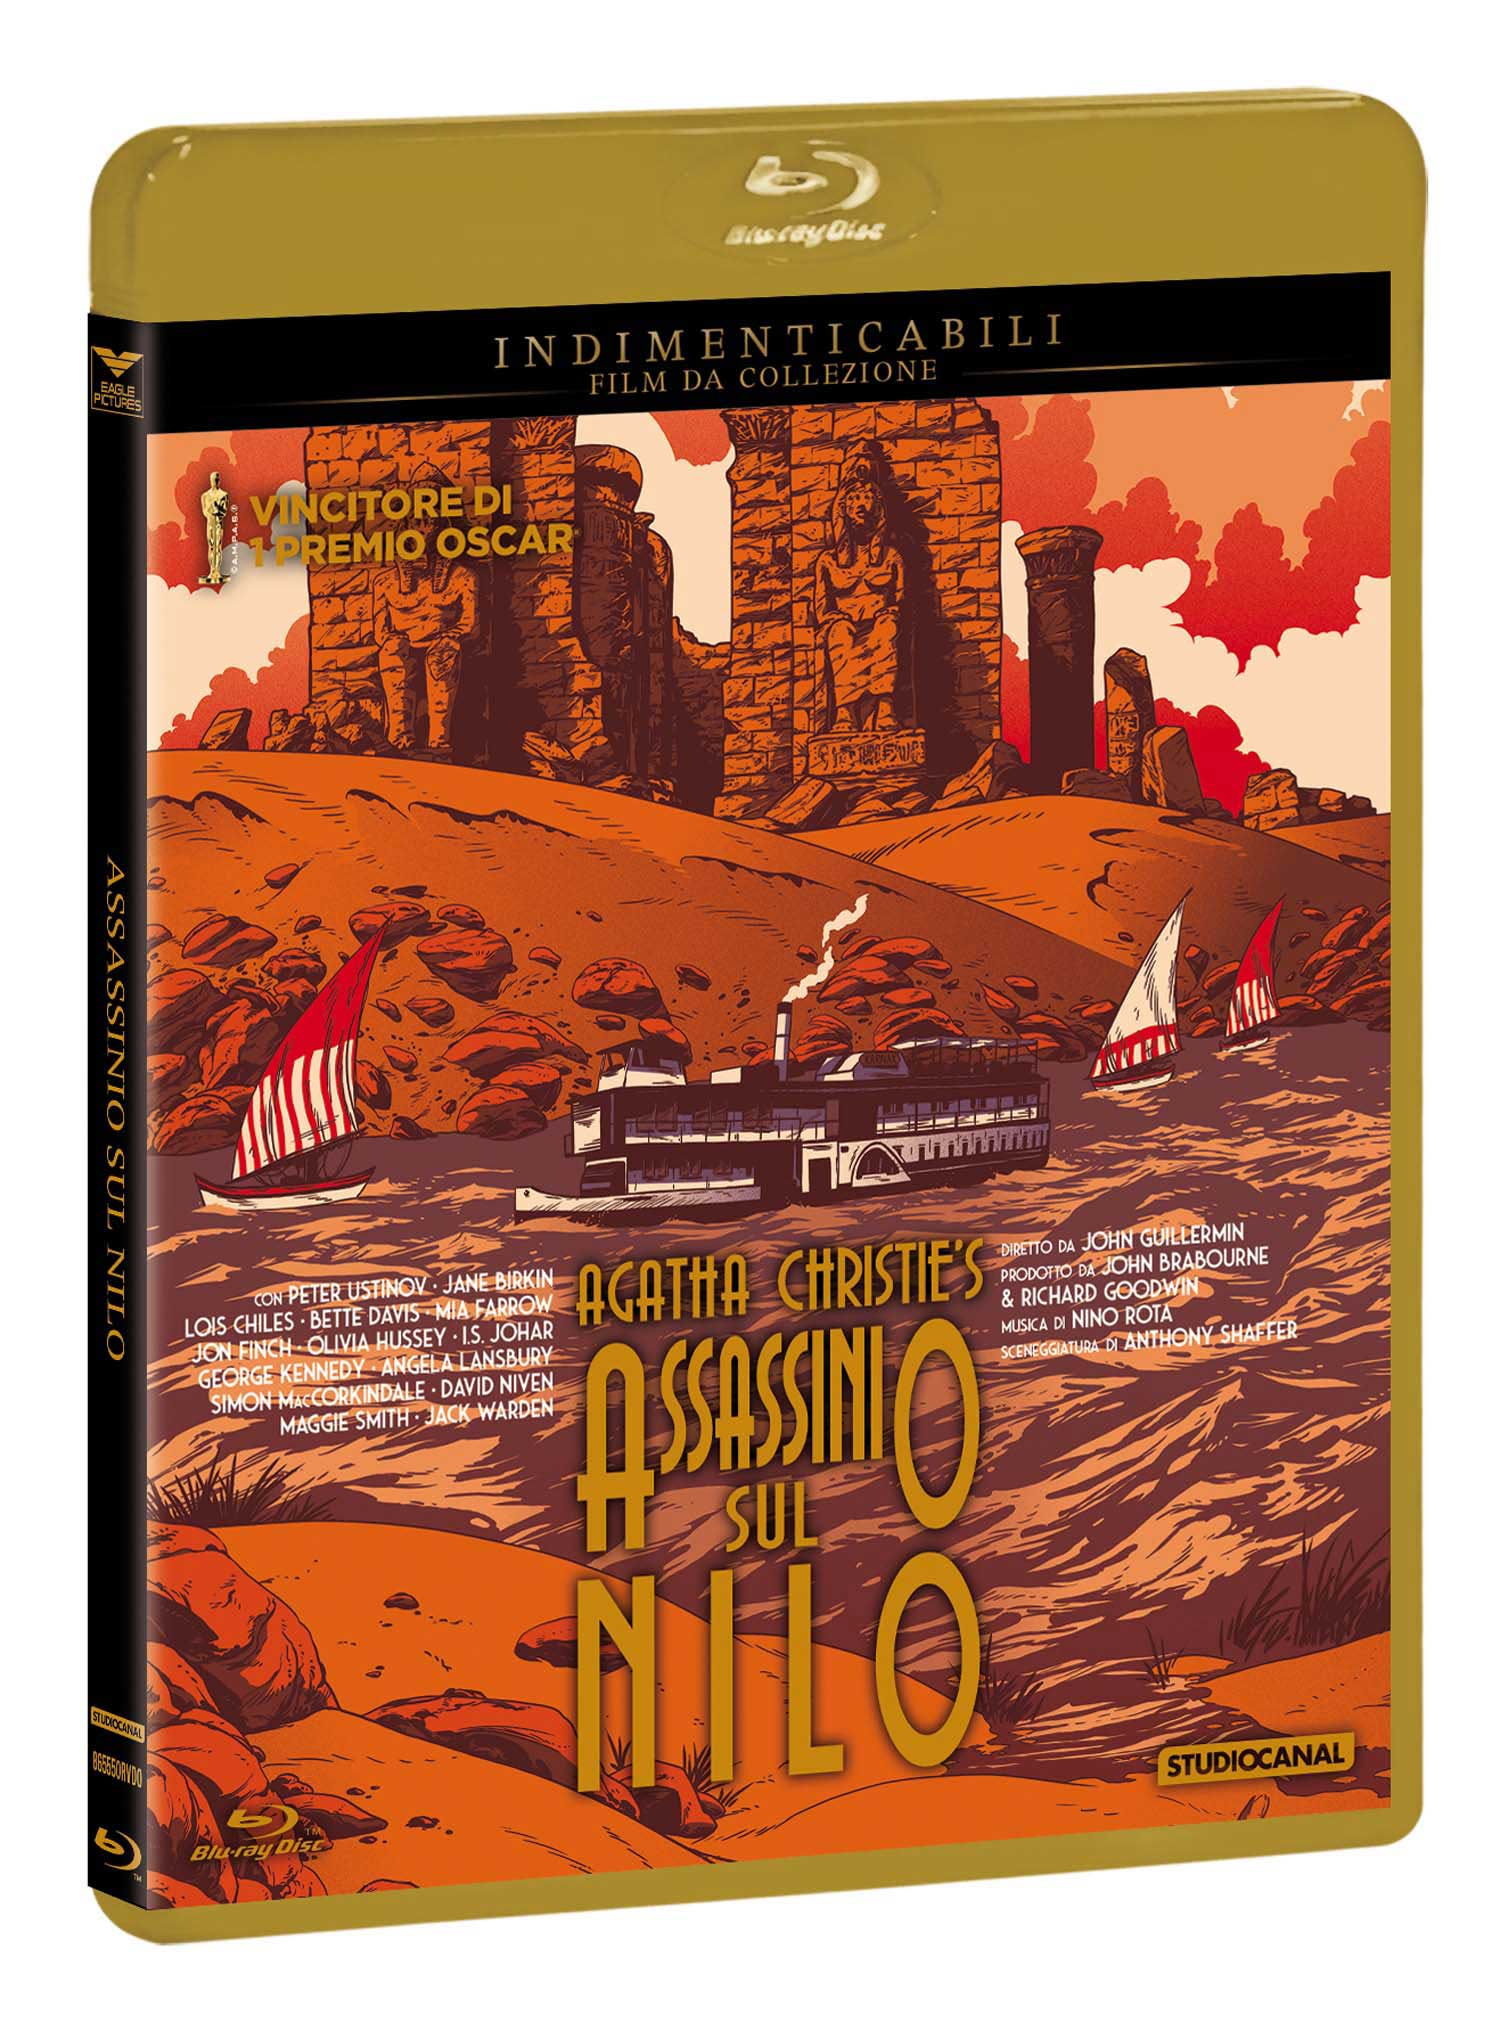 ASSASSINIO SUL NILO (INDIMENTICABILI) - BLU RAY